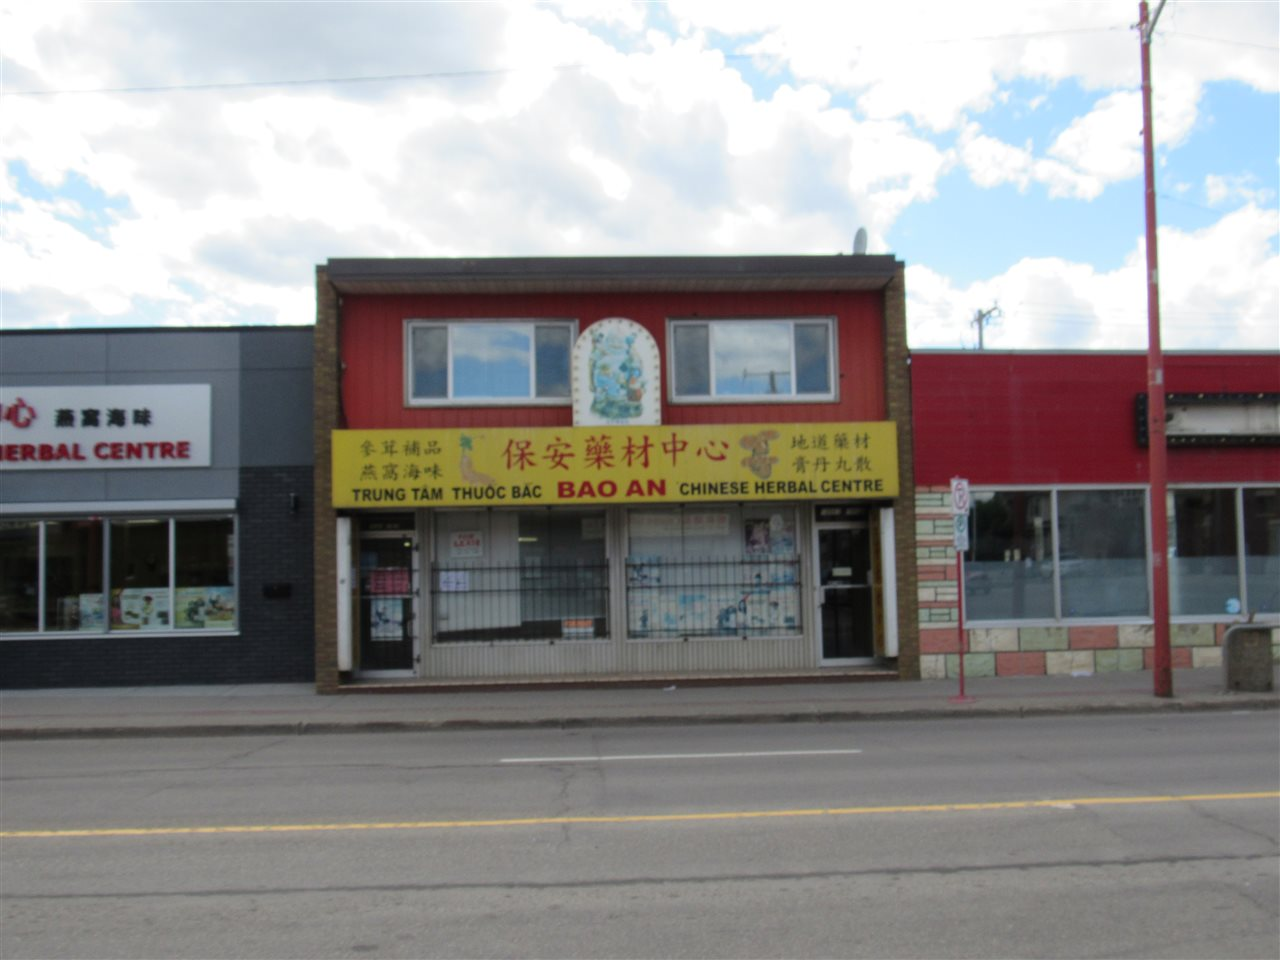 Excellent retail space located at vibrant Chinatown core with high exposure along 97 St. Approx 1522 sq ft on main with same size in fully finished  basement  with front and rear entrance.  There are 2  2pcs bath, office, laundry room and storage rooms in basement. Separate power meter. Monthly rent $ 3,000 plus 50%  for property tax, heat and water.( property tax, heat and water works out approx $430/month). Quick possession. Ideal opportunity to set up your business..